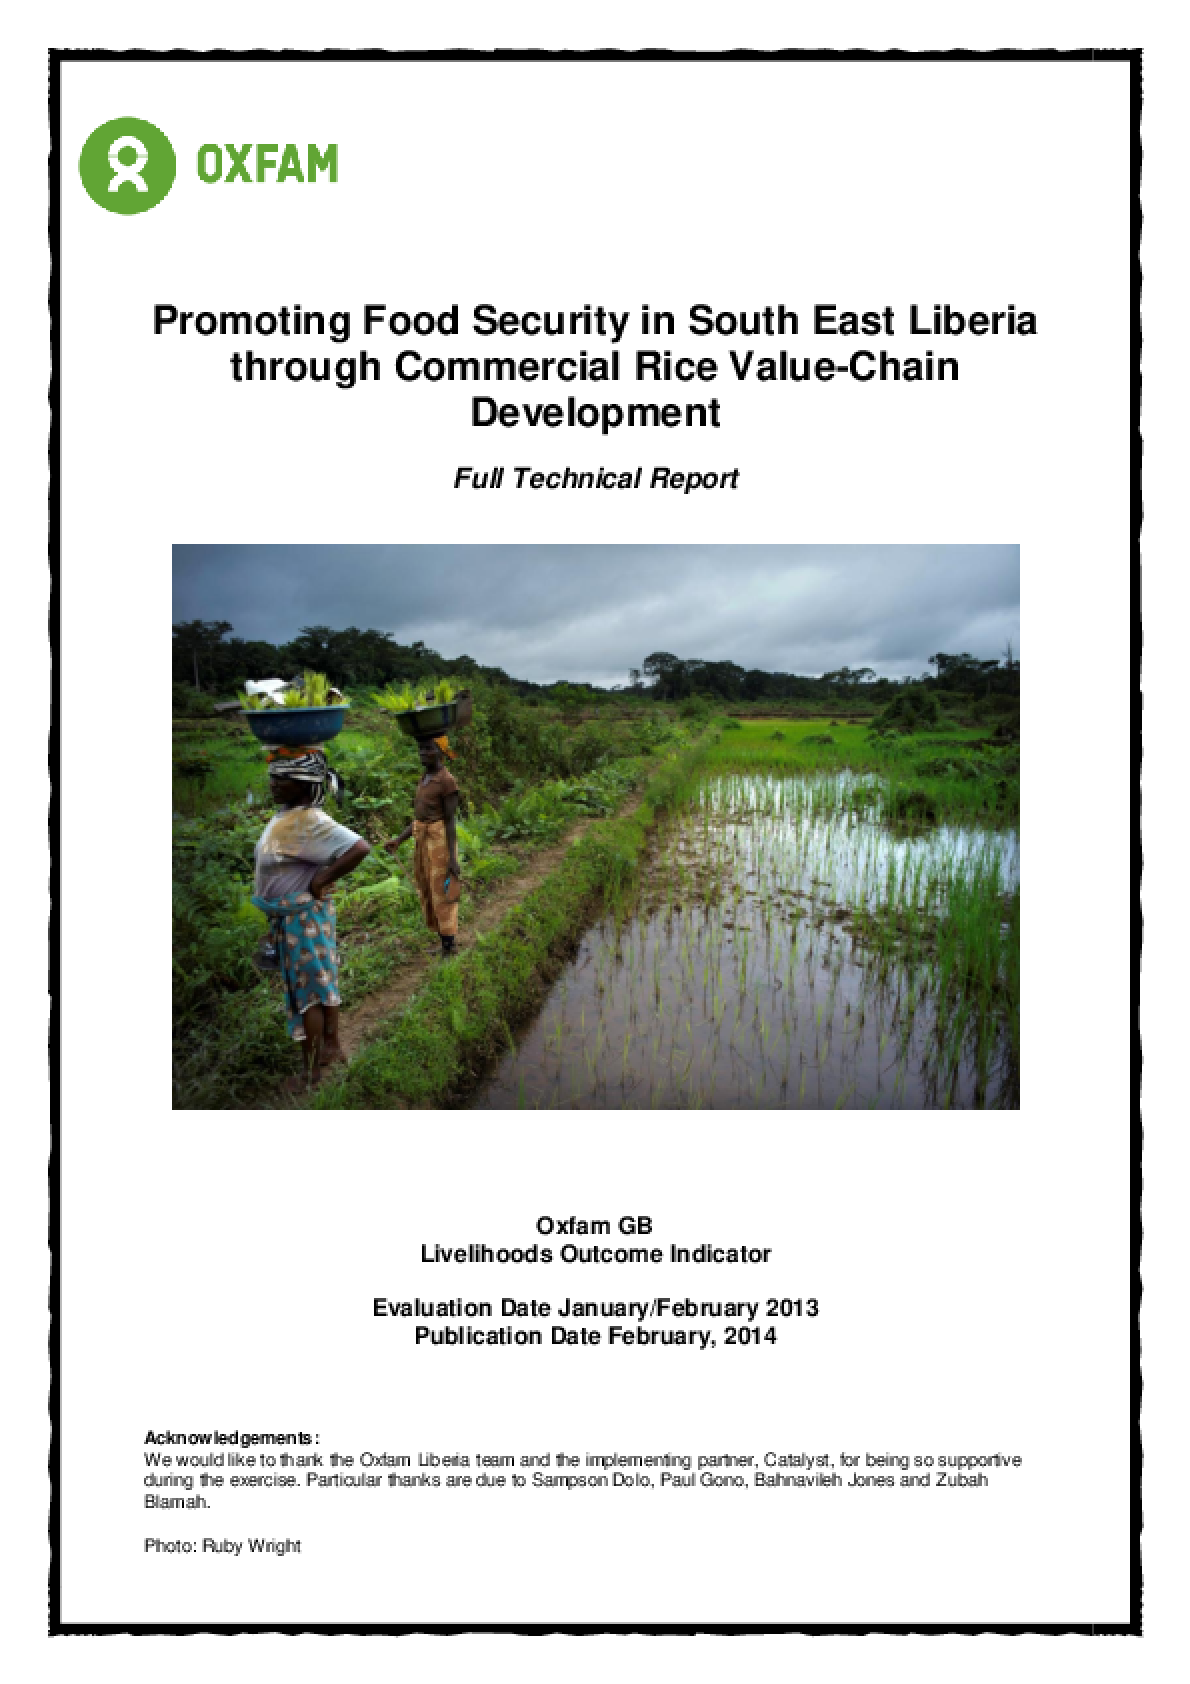 Effectiveness Review: Promoting Food Security in South East Liberia through Commercial Rice Value-Chain Development